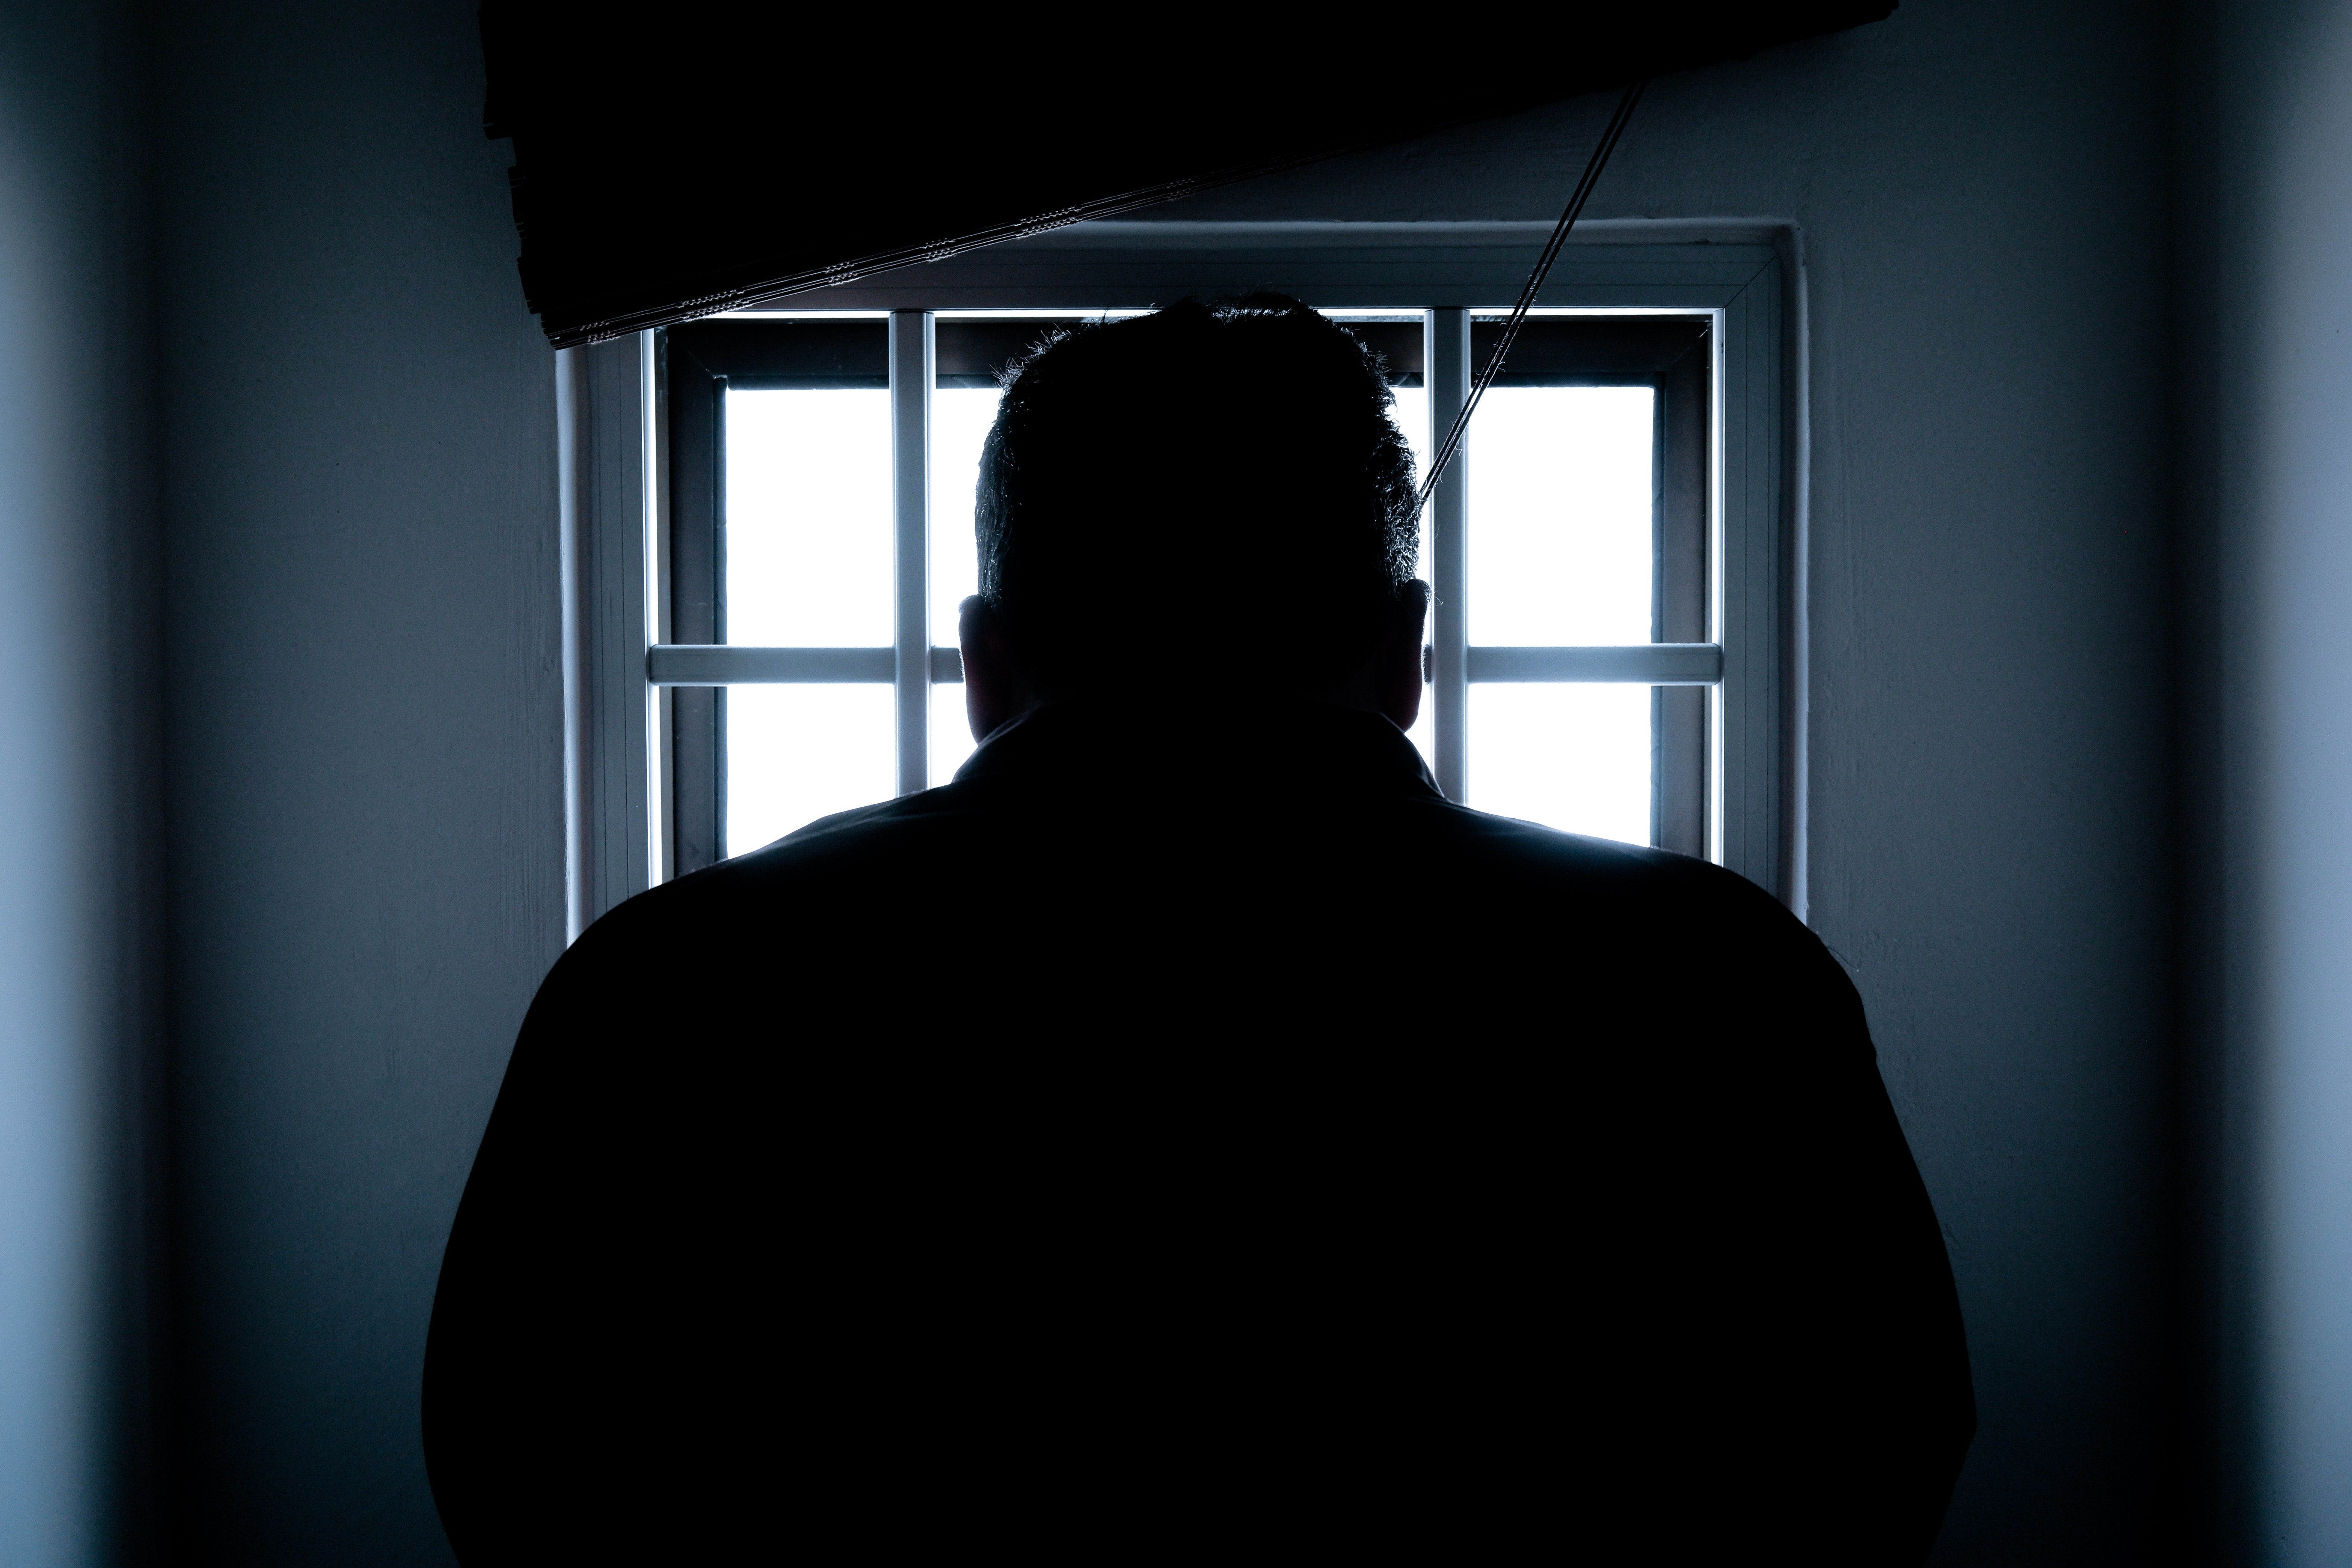 A prisoner's silhouette from behind